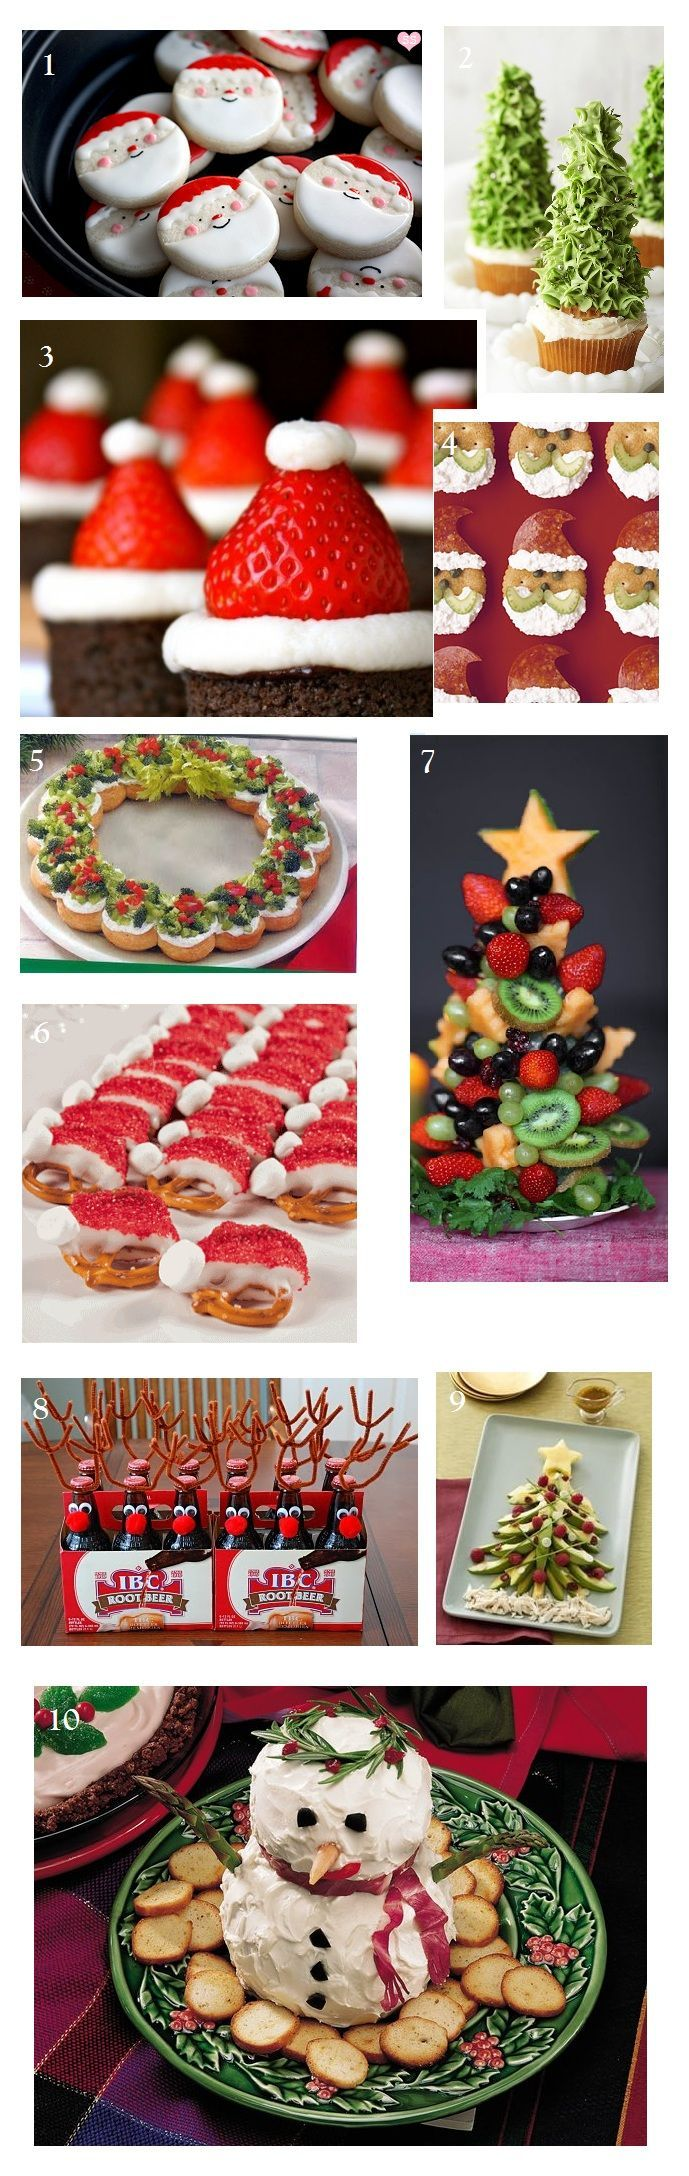 Christmas Party Food Ideas.  www.smartshopperusa.com  Shop for these ingredients using the SmartShopper Grocery List.  The SmartShopper uses voice recognition and prints out a categorized list.  Makes a great Christmas present.  Use coupon code: pinterest for a 10% discount and free shipping.